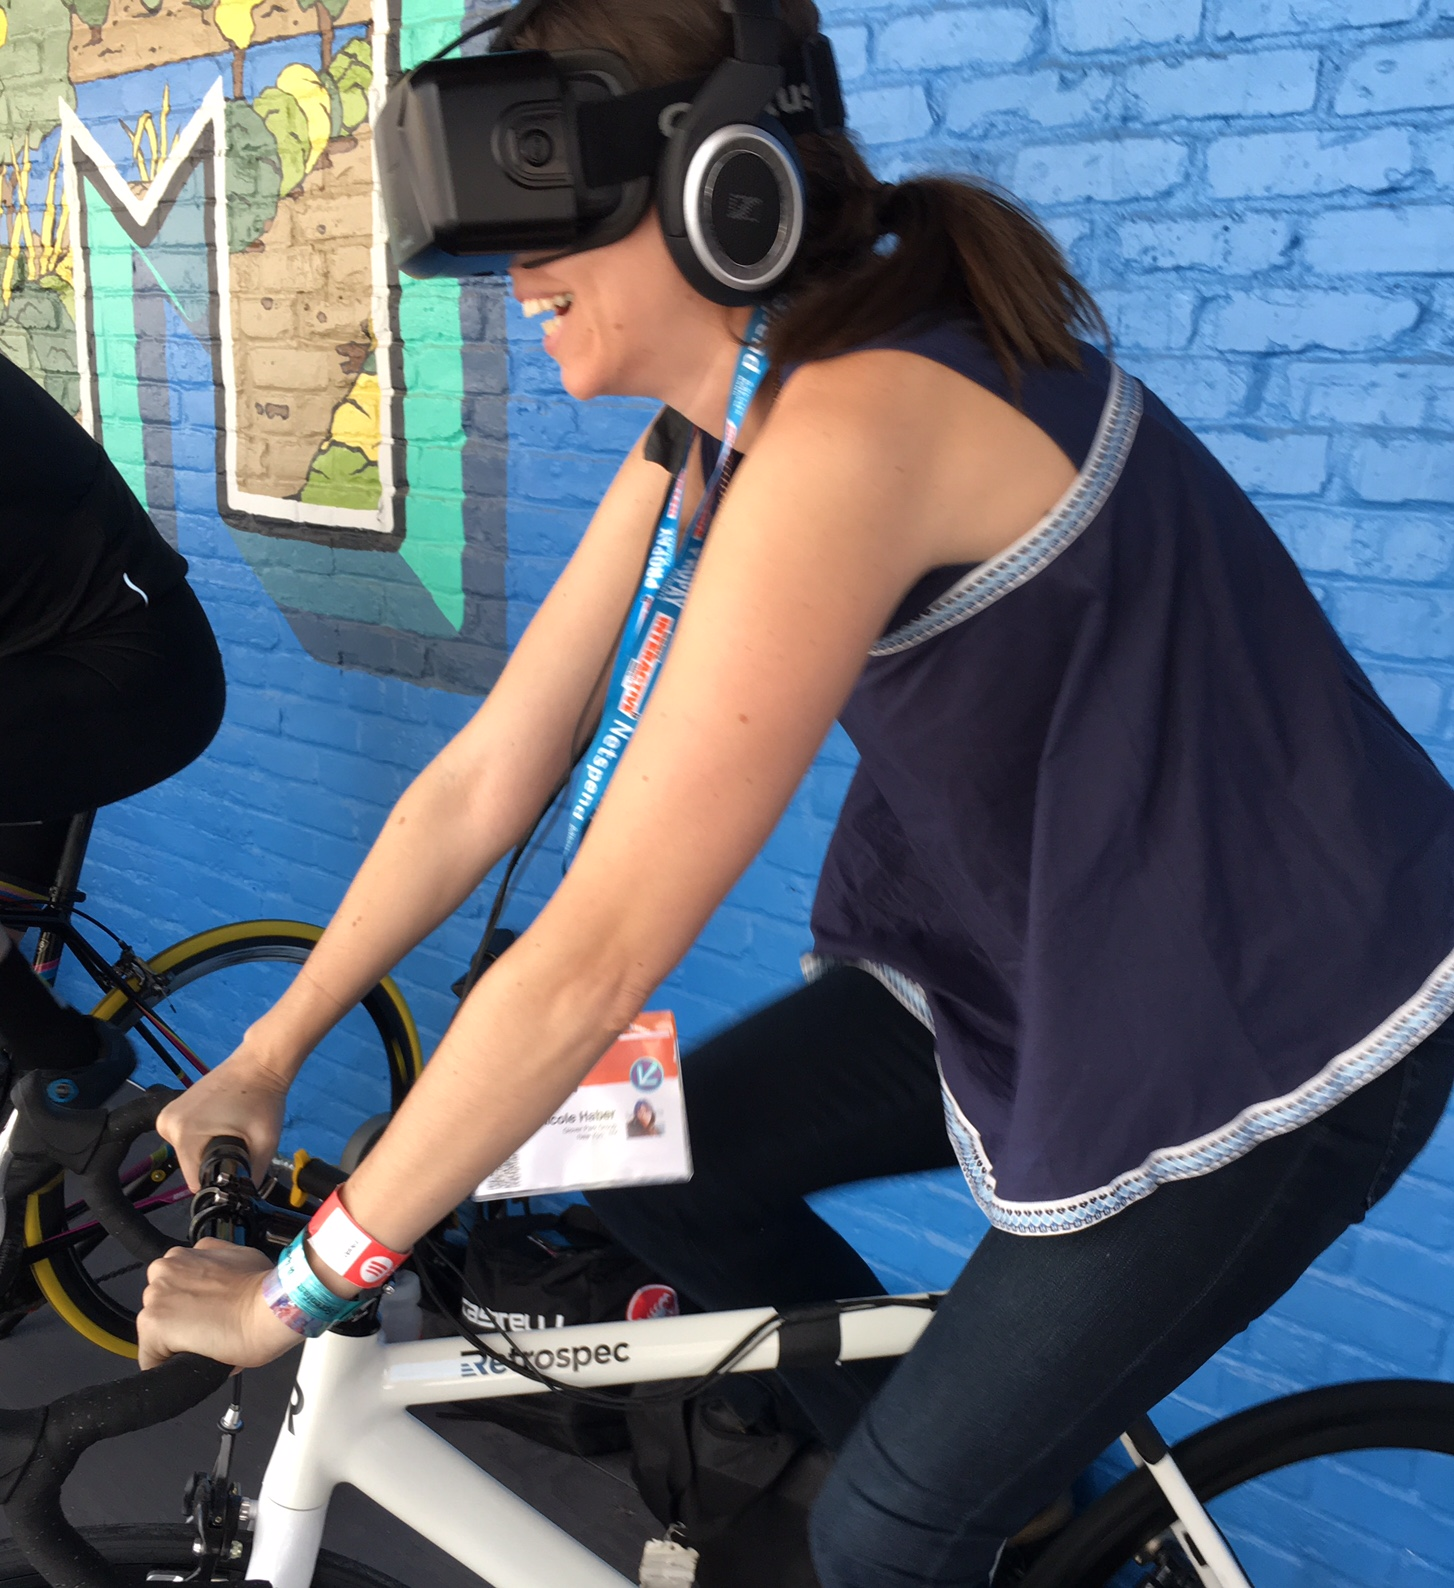 VR ride thanks to IBM